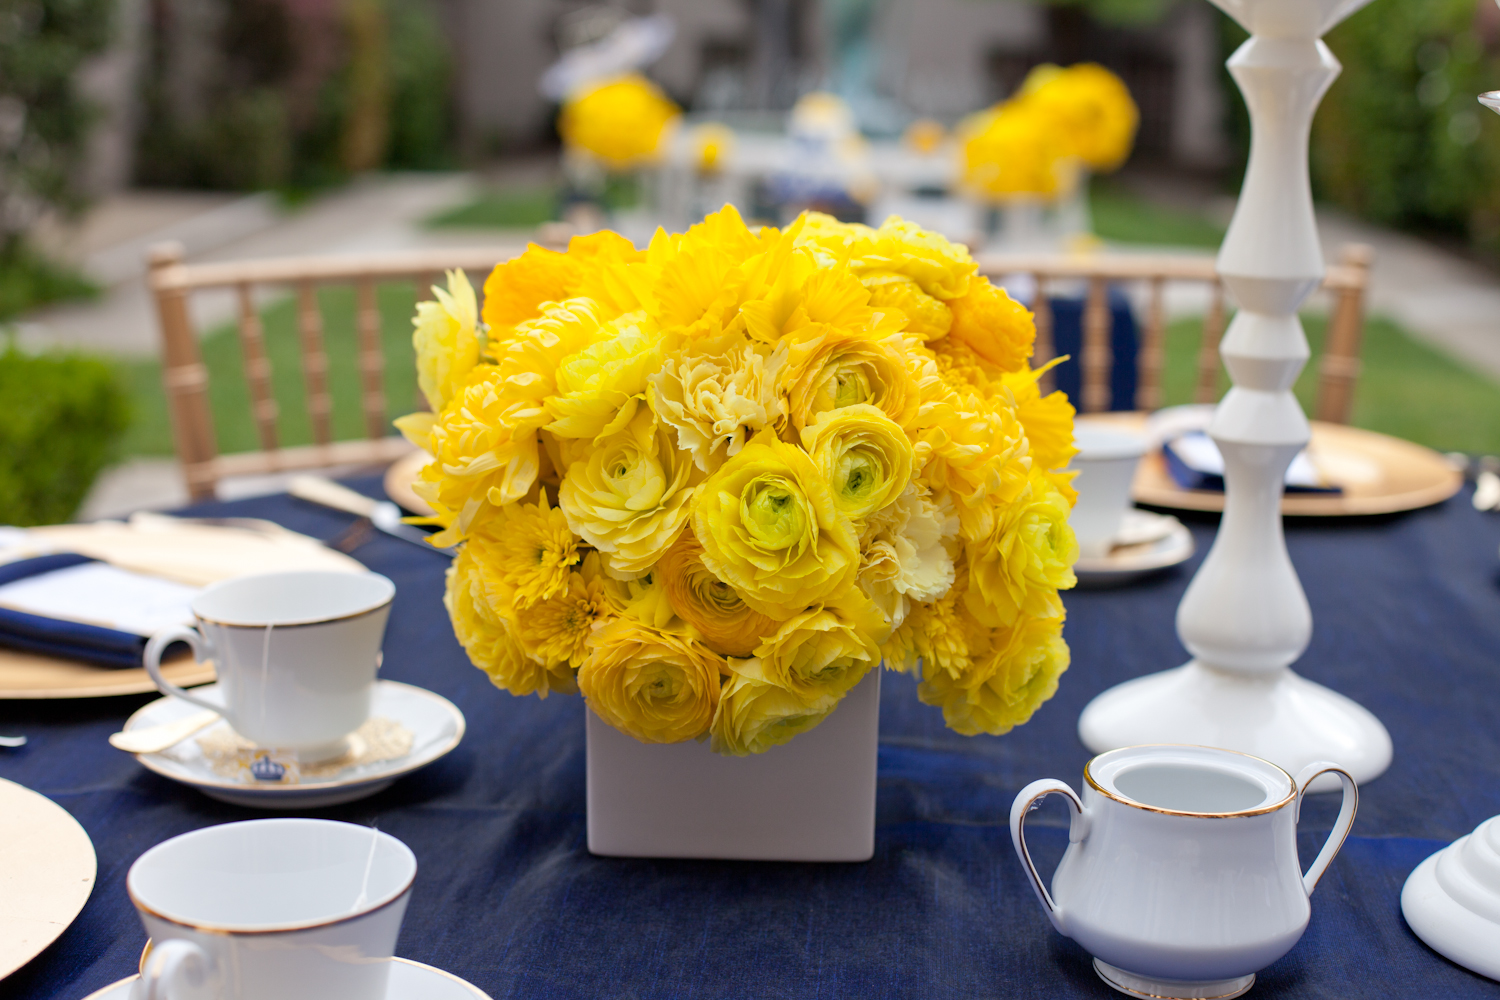 Royal wedding bridal shower yellow and blue